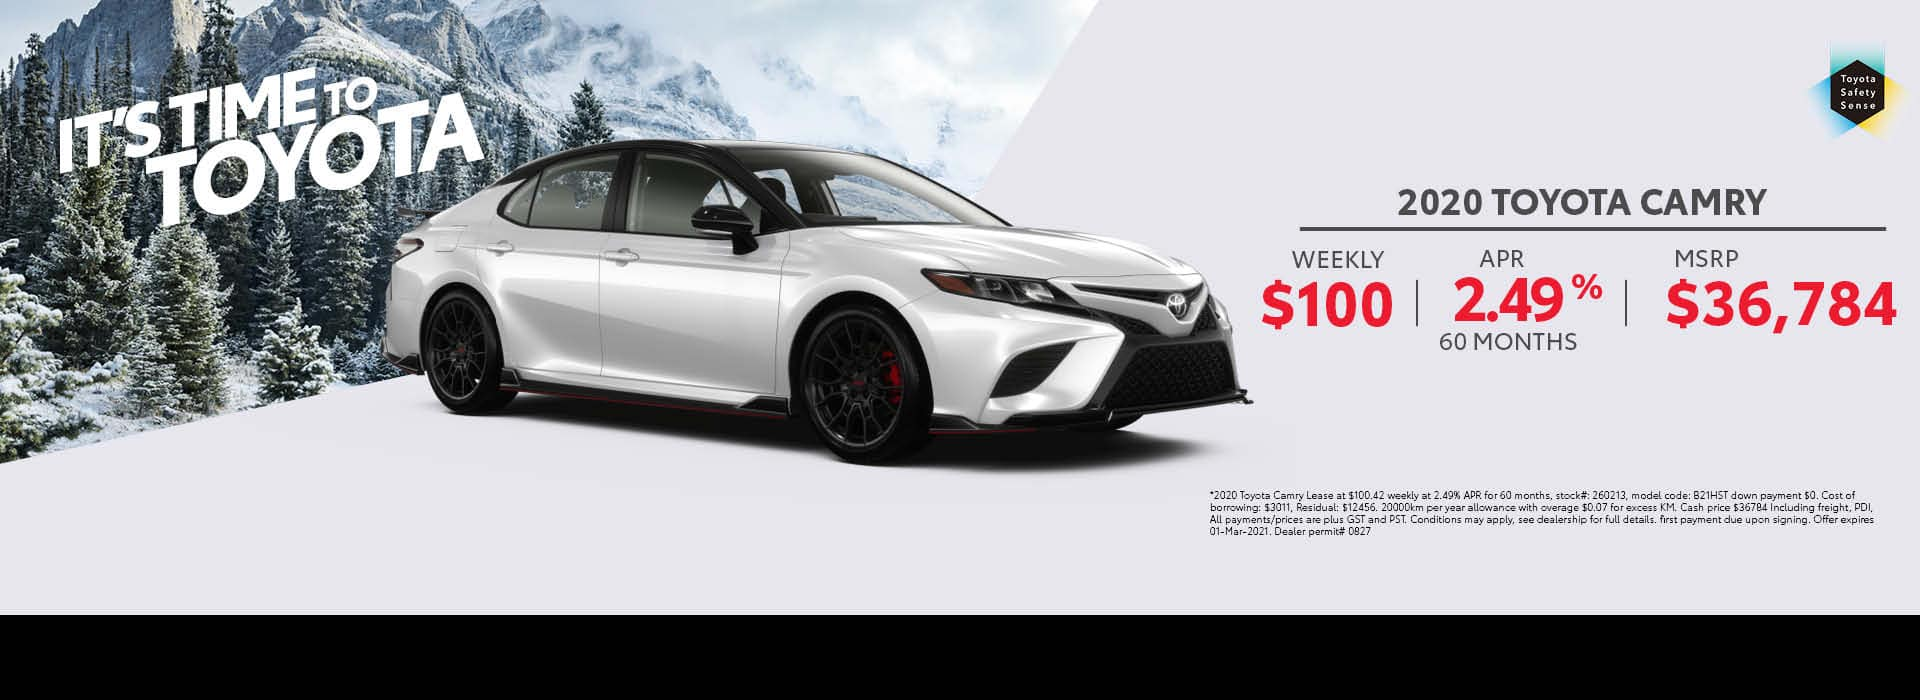 2020_Toyota_Camry_Desktop_Home_Page_Banner_Feb2021